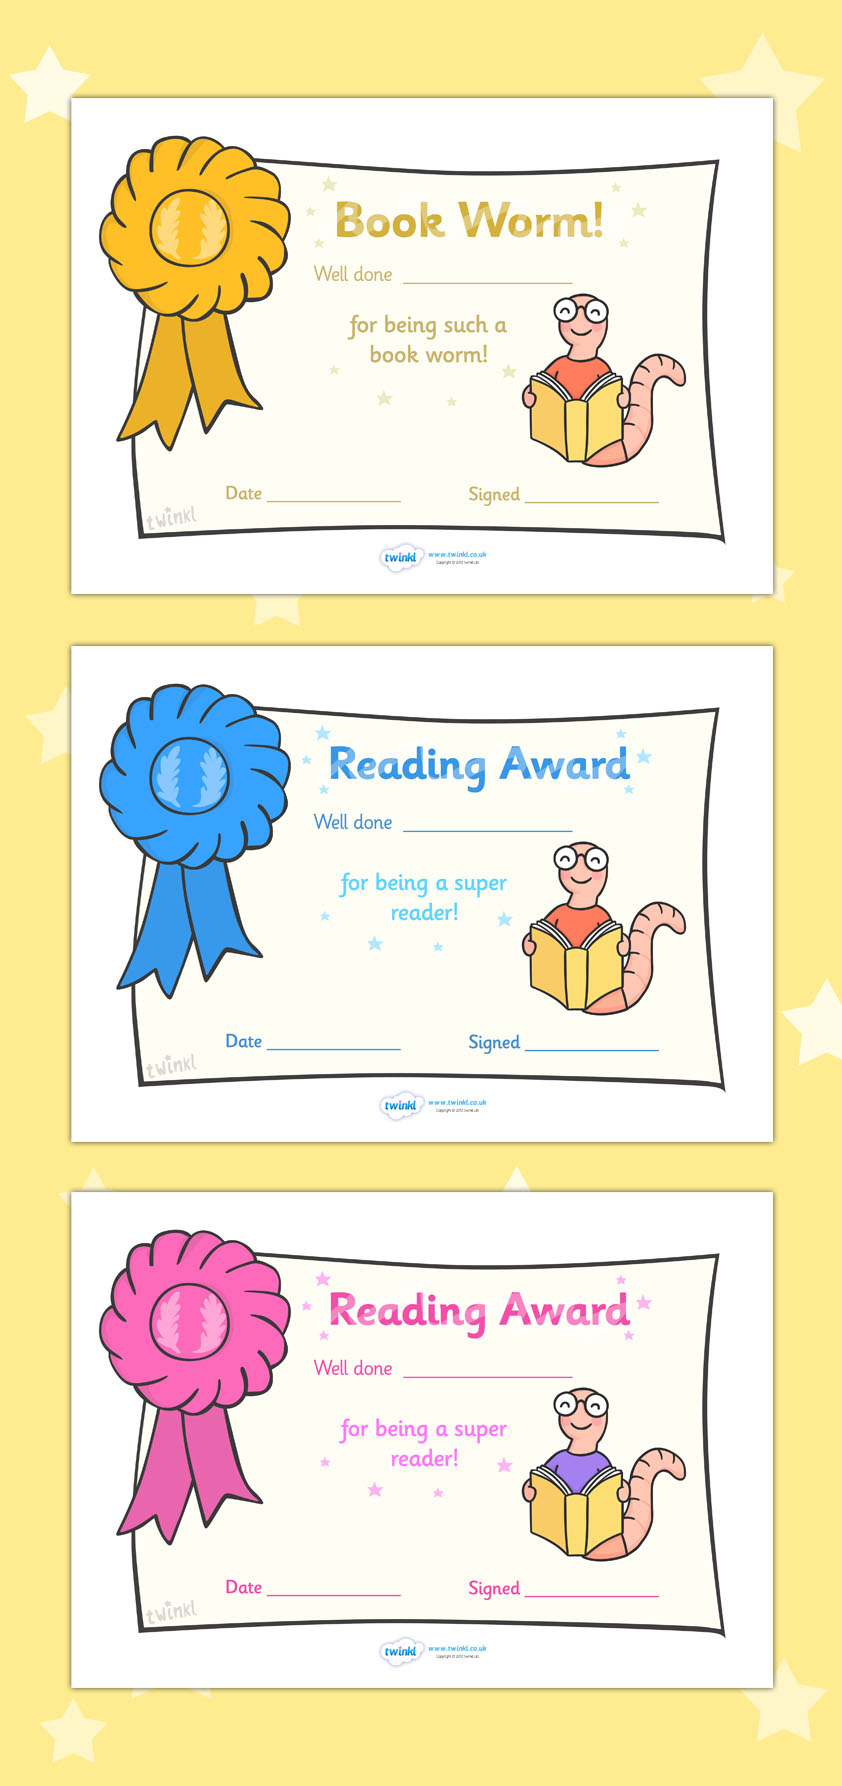 Worm clipart super reader Resources >> Award resources Editable